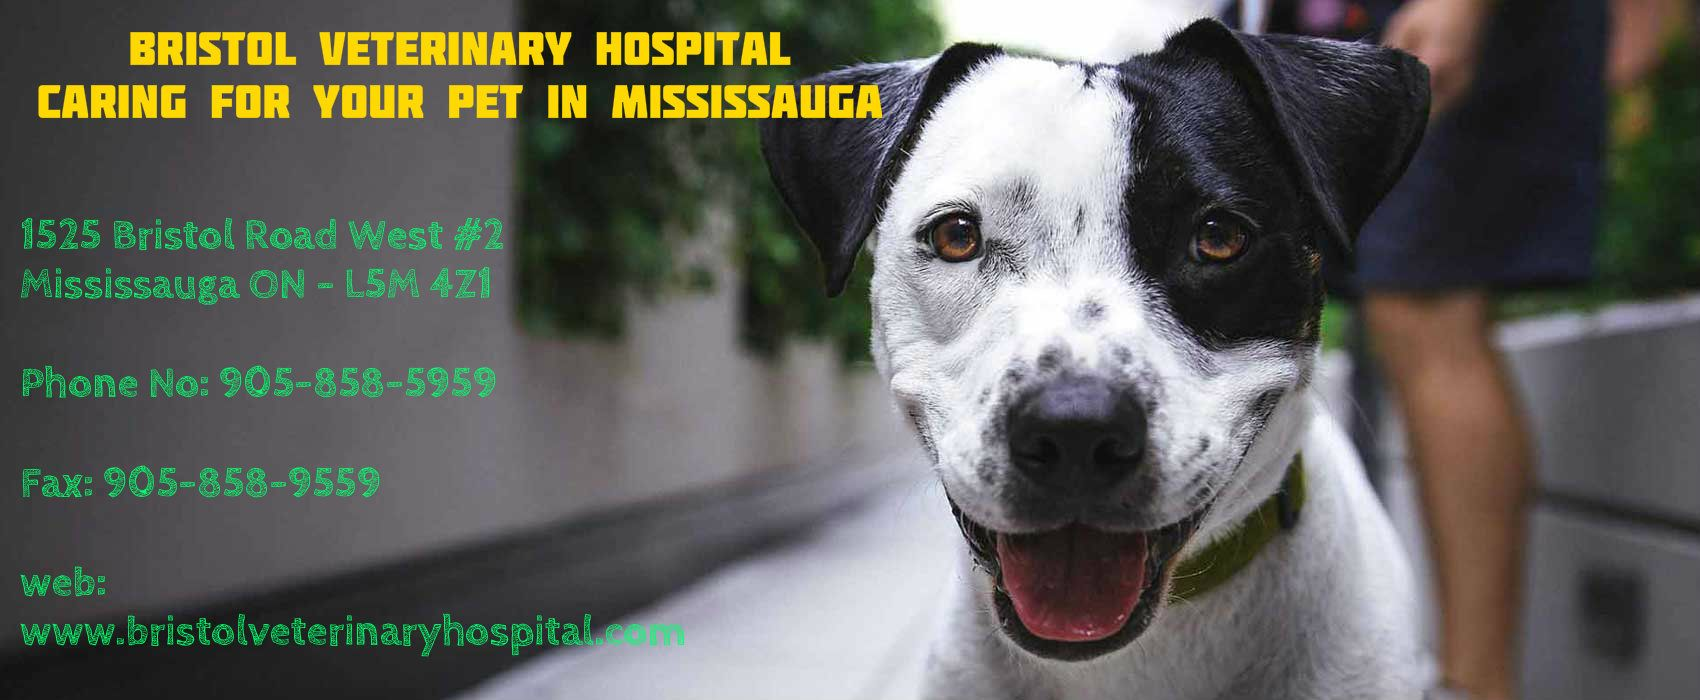 We Are The Best Animal Care Hospital In Mississauga We Provide 24 7 Emergency Medical Checkup Dental Care Diagnosis Care Hospital Veterinary Services Medical Pictures